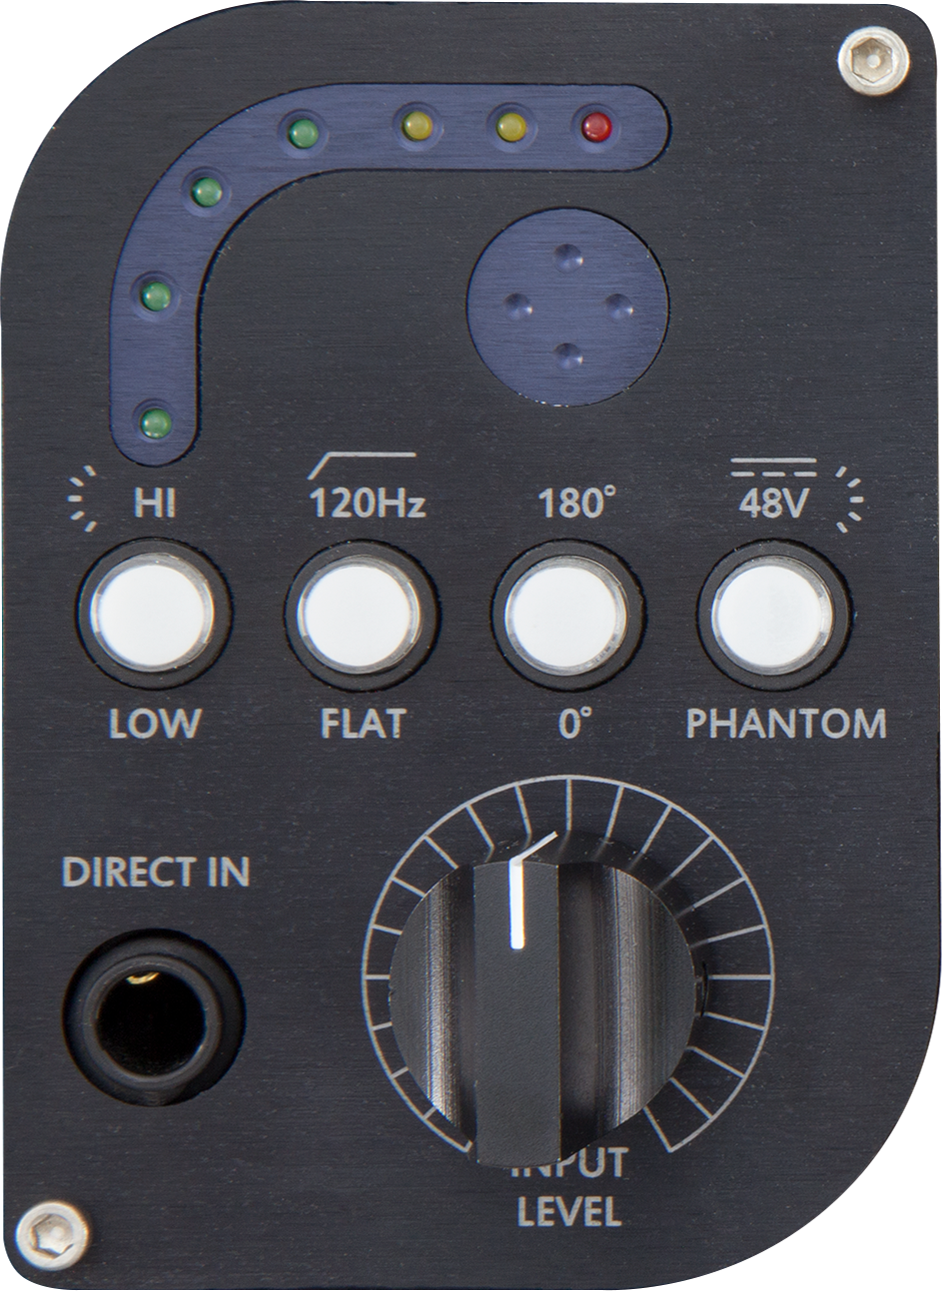 - 7-Segment LED Peak MeteringSelectable Gain, LOW vs HIGH120Hz High Pass Filter switchPhase Invert switch48V Phantom power switchInput Attenuator (Variable Pad)Silent Input Level Control (Variable Input Pad)1/4